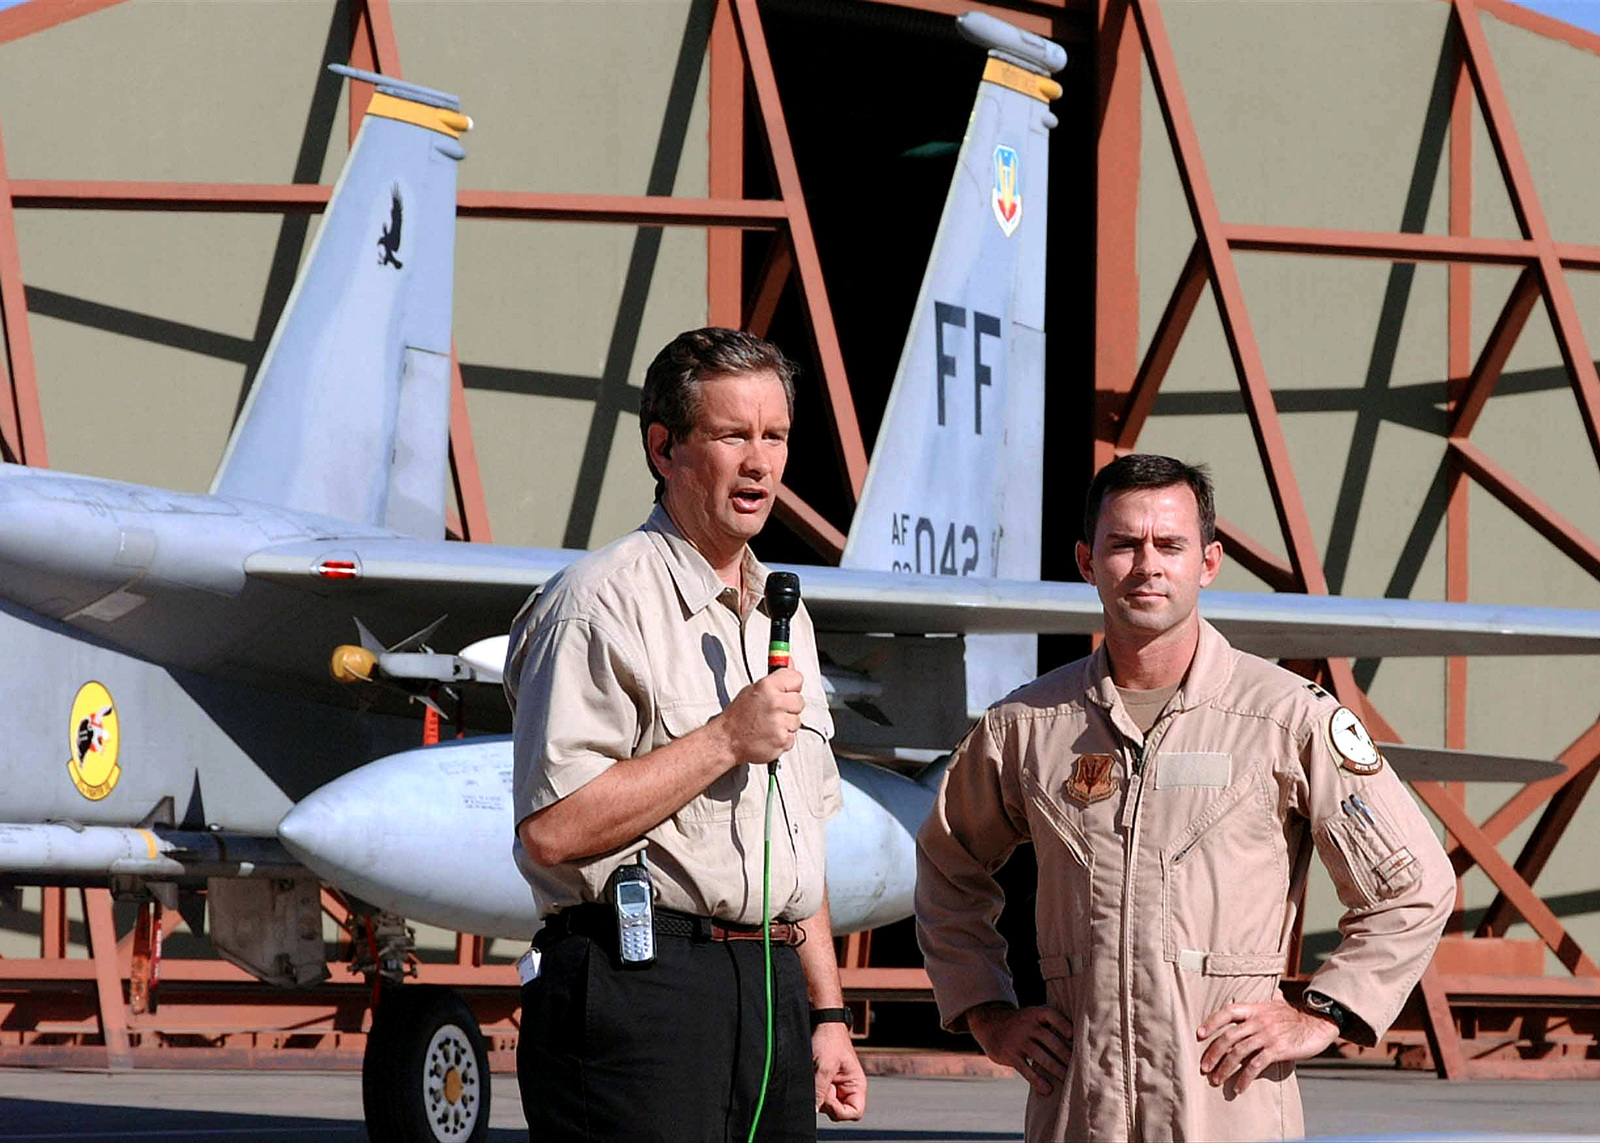 With a US Air Force (USAF) F-15C Eagle aircraft set as the backdrop, Cable News Network (CNN) senior Pentagon correspondent Jamie McIntyre (left), conducts a live interview with USAF Captain (CPT) Patrick Driscoll, a Pilot assigned to the 25th Expeditionary Fighter Squadron (EFS), during CNNs the first ever live satellite feed from Incirlik Air Base (AB), Turkey, conducted during Combined Task Force (CTF), Operation NORTHERN WATCH